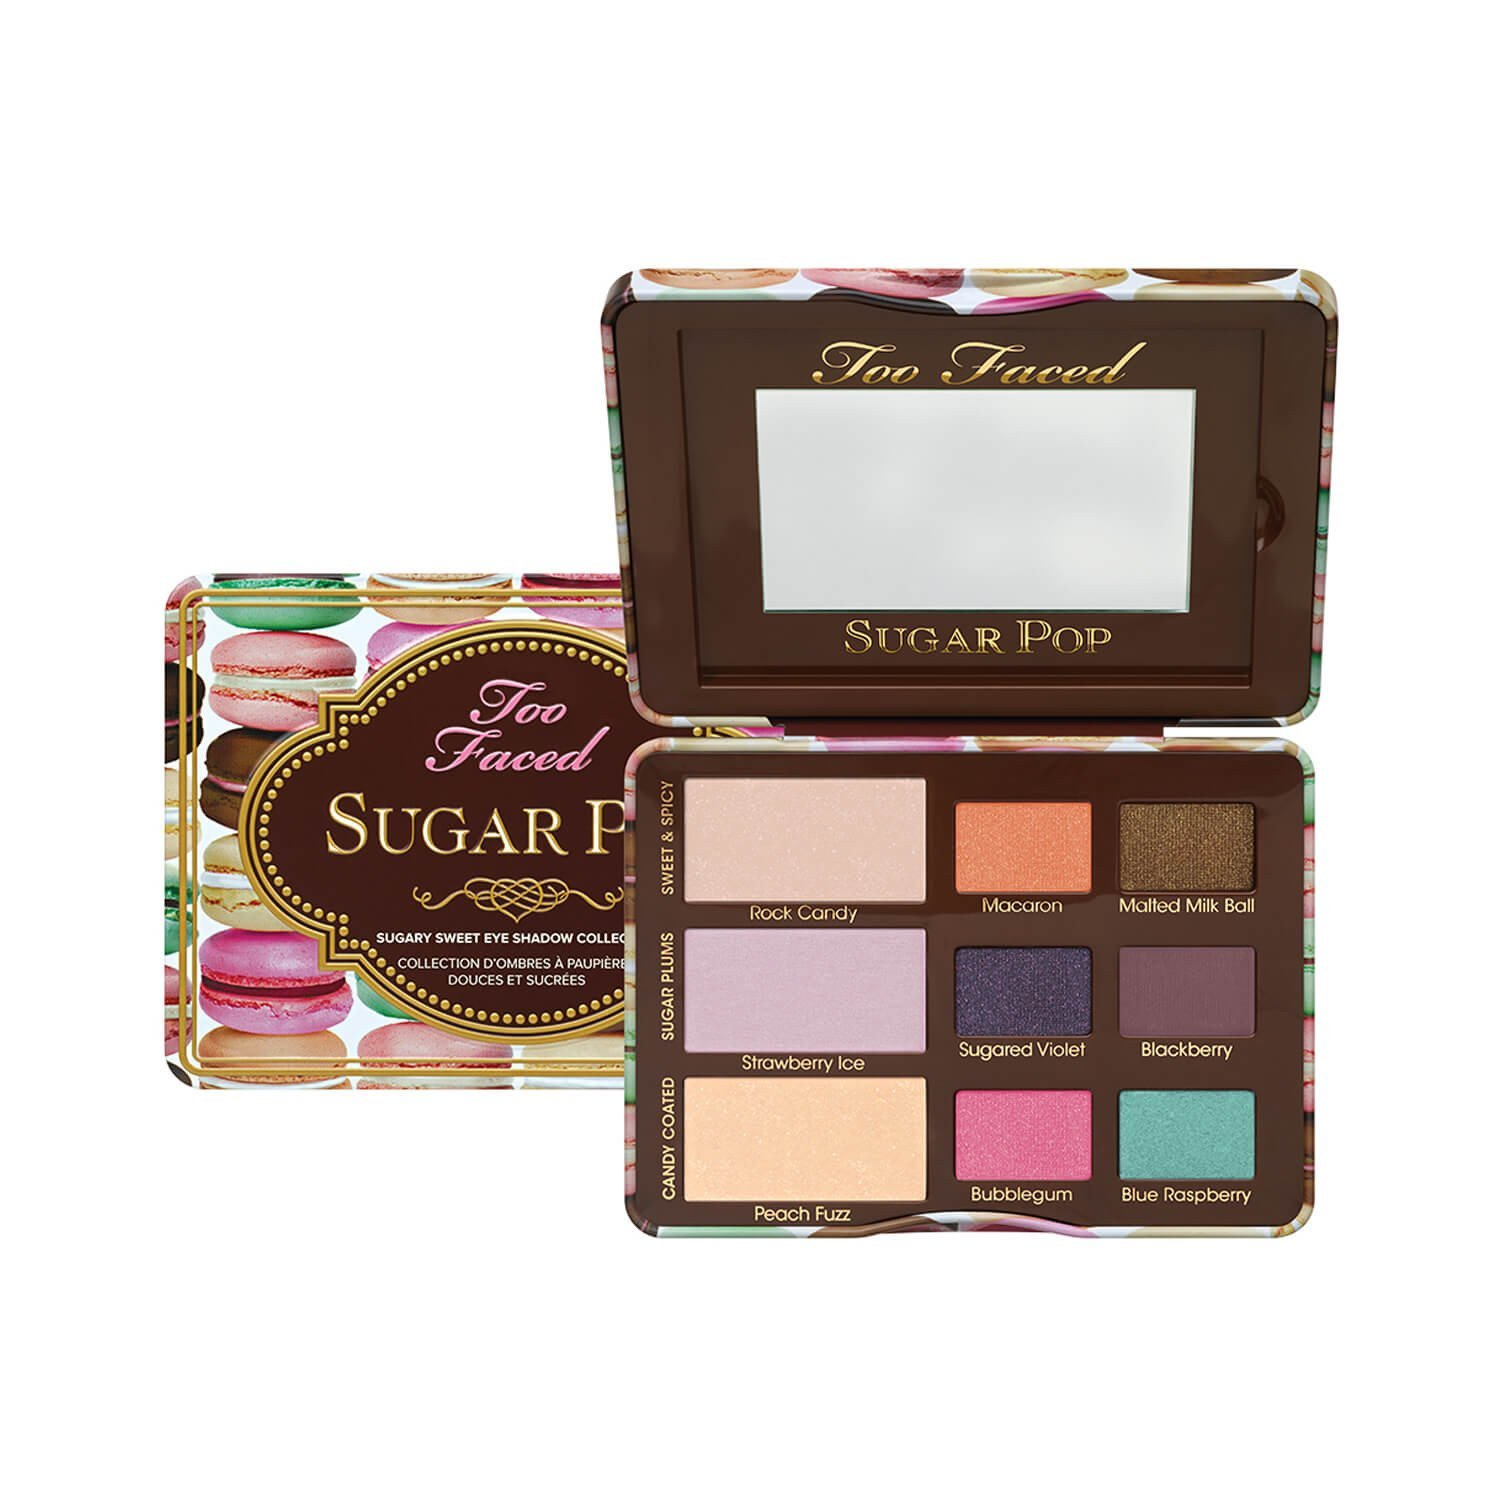 Too Faced Sugar Pop Sugary Sweet Eye Shadow Collection